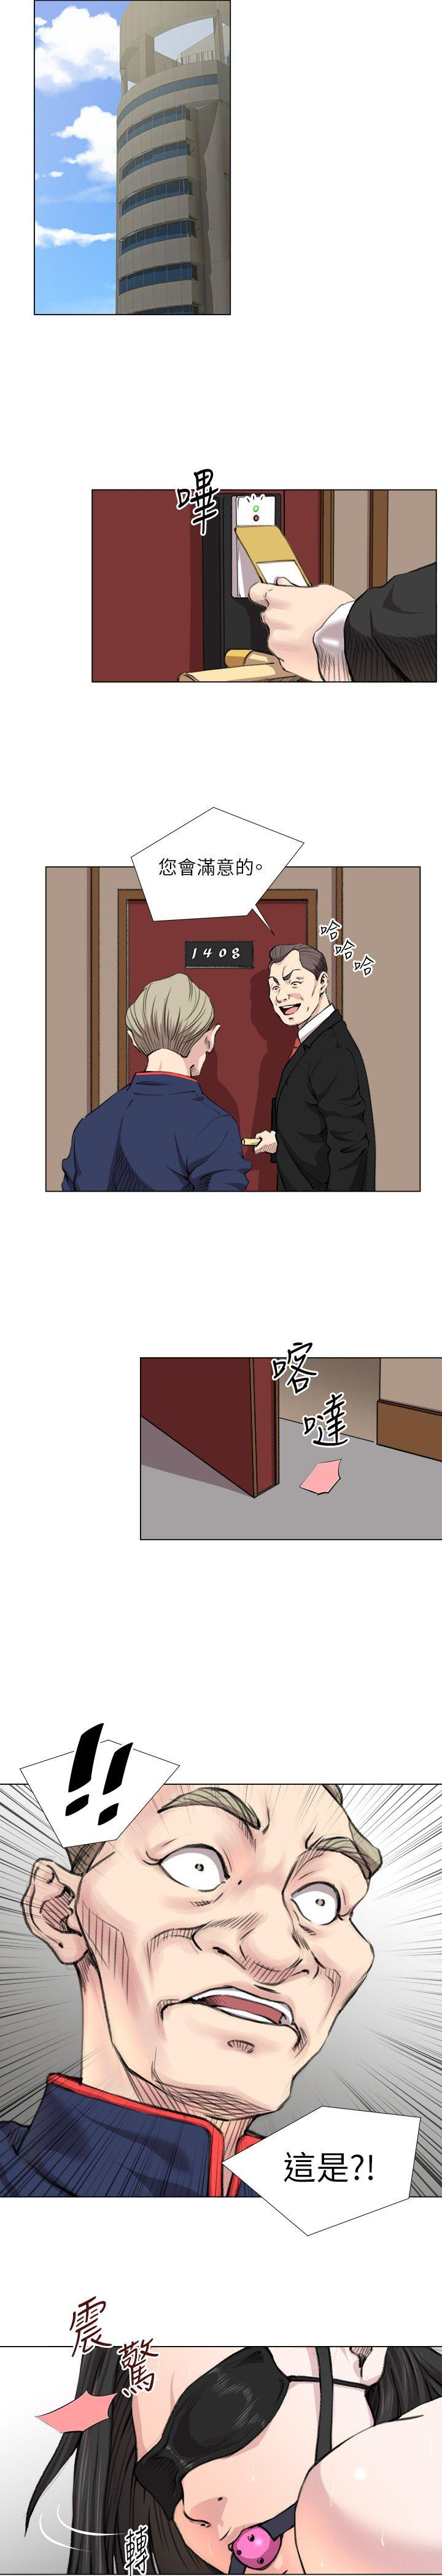 OFFICE TROUBLE 346